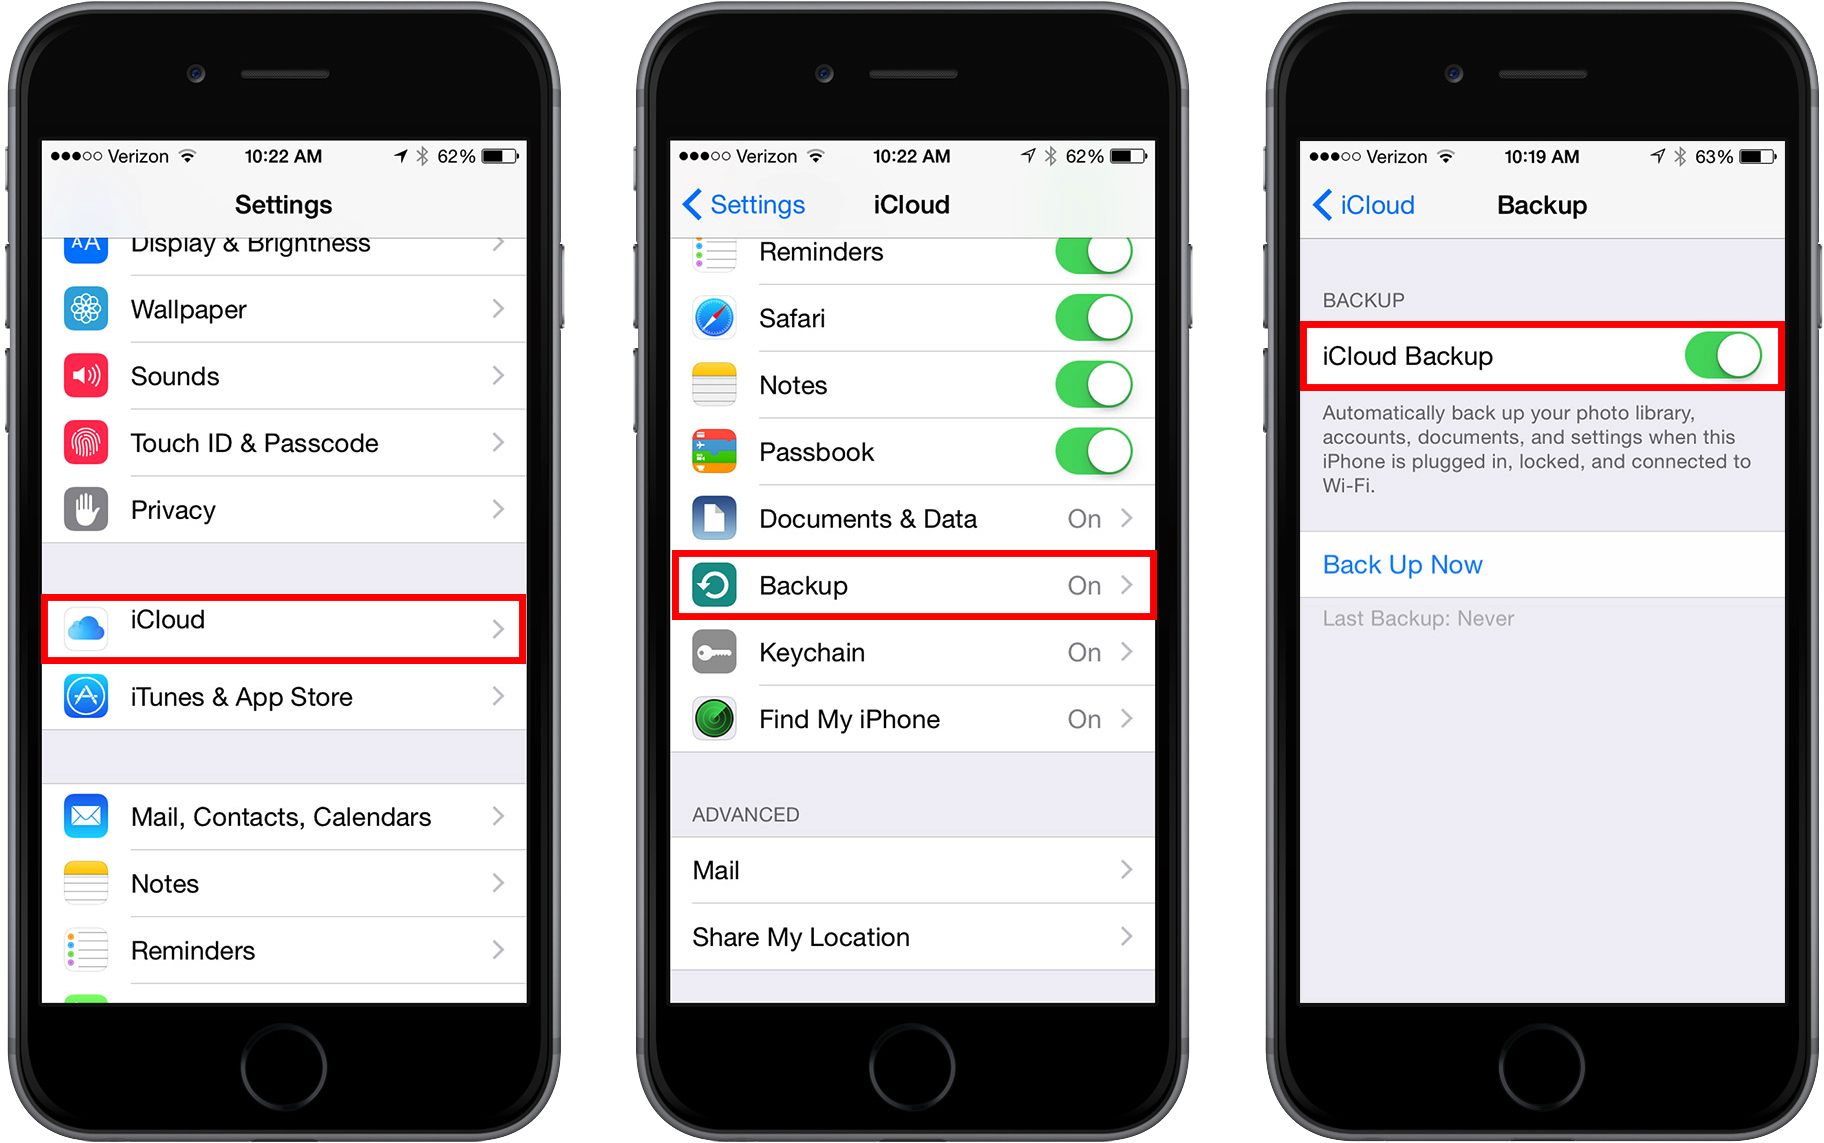 How to Backup iPhone 6/6s/4/4s/5/5s/5c/SE/7 to iCloud